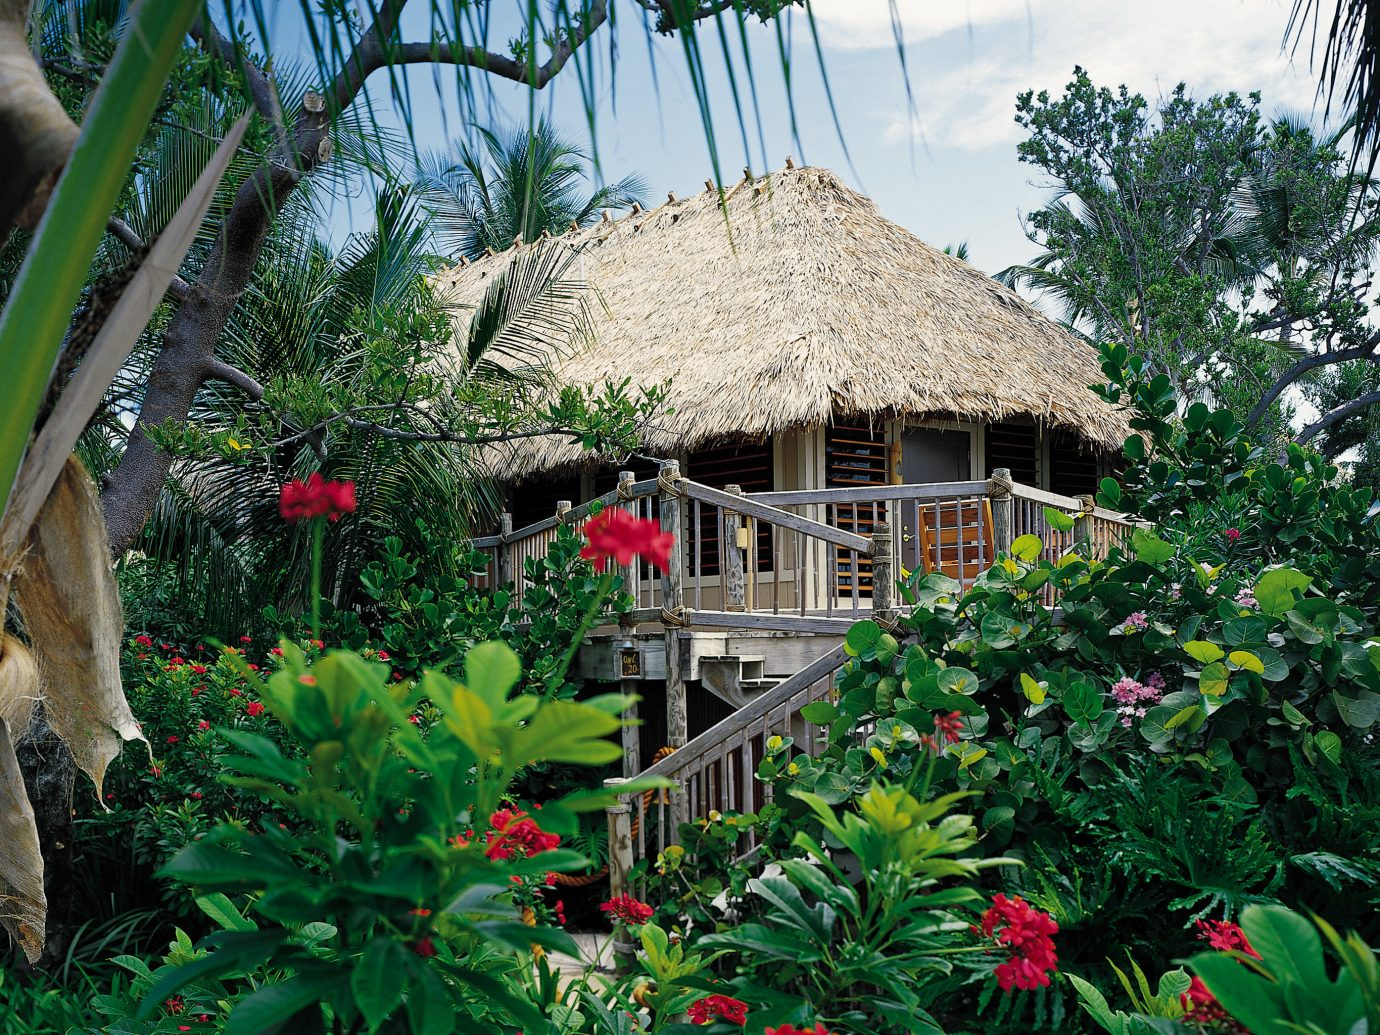 Beachfront Exterior Hotels Island Outdoors Resort Romance Romantic Secret Getaways Trip Ideas Waterfront tree outdoor house plant Garden botany flower Jungle greenhouse yard backyard cottage estate tropics rainforest outdoor structure bushes surrounded